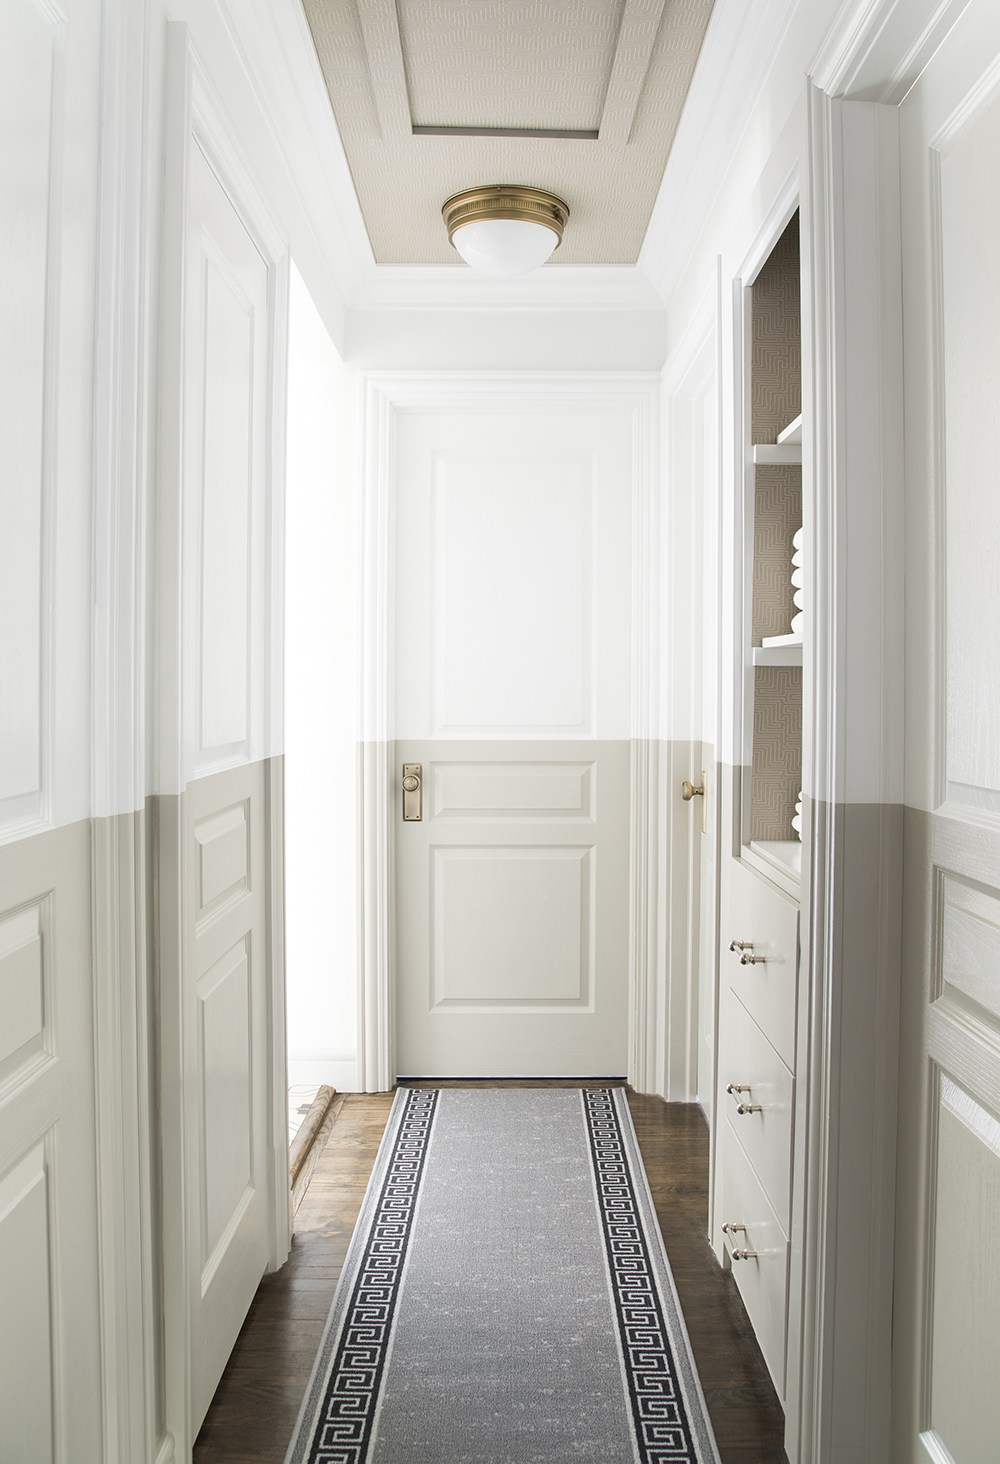 Neutral Hallway Runners that Add Pattern & Texture - roomfortuesday.com